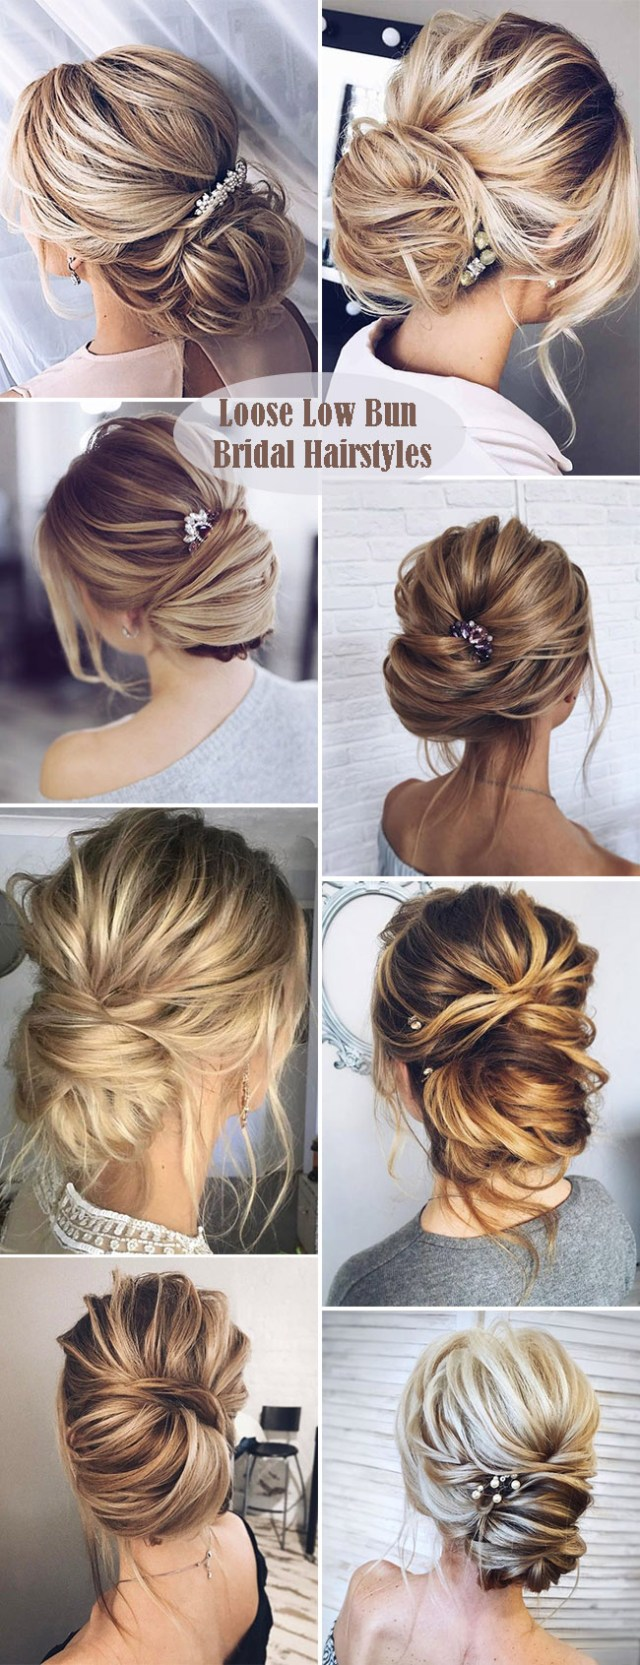 31 drop-dead wedding hairstyles for all brides